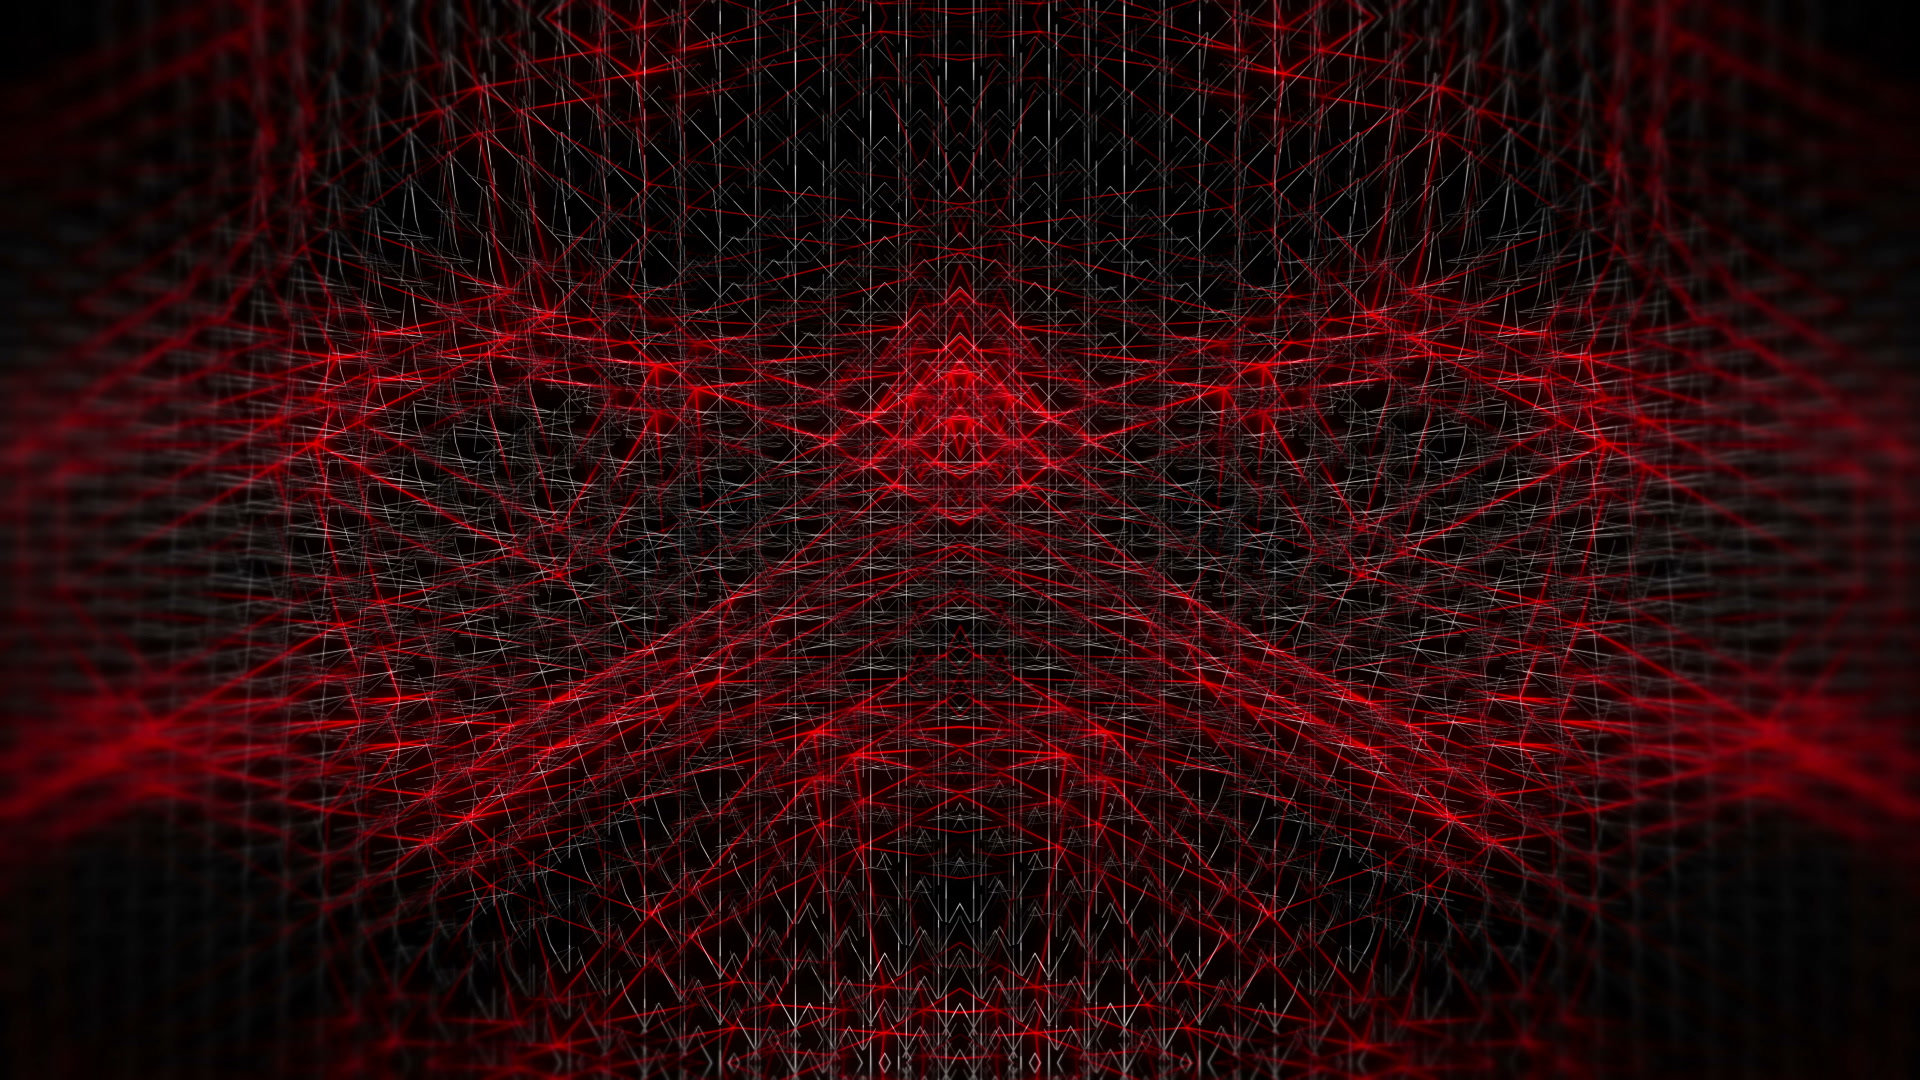 vj video background Slow-Needle-Pattern-LIMEART-VJ-Loop-FullHD_003